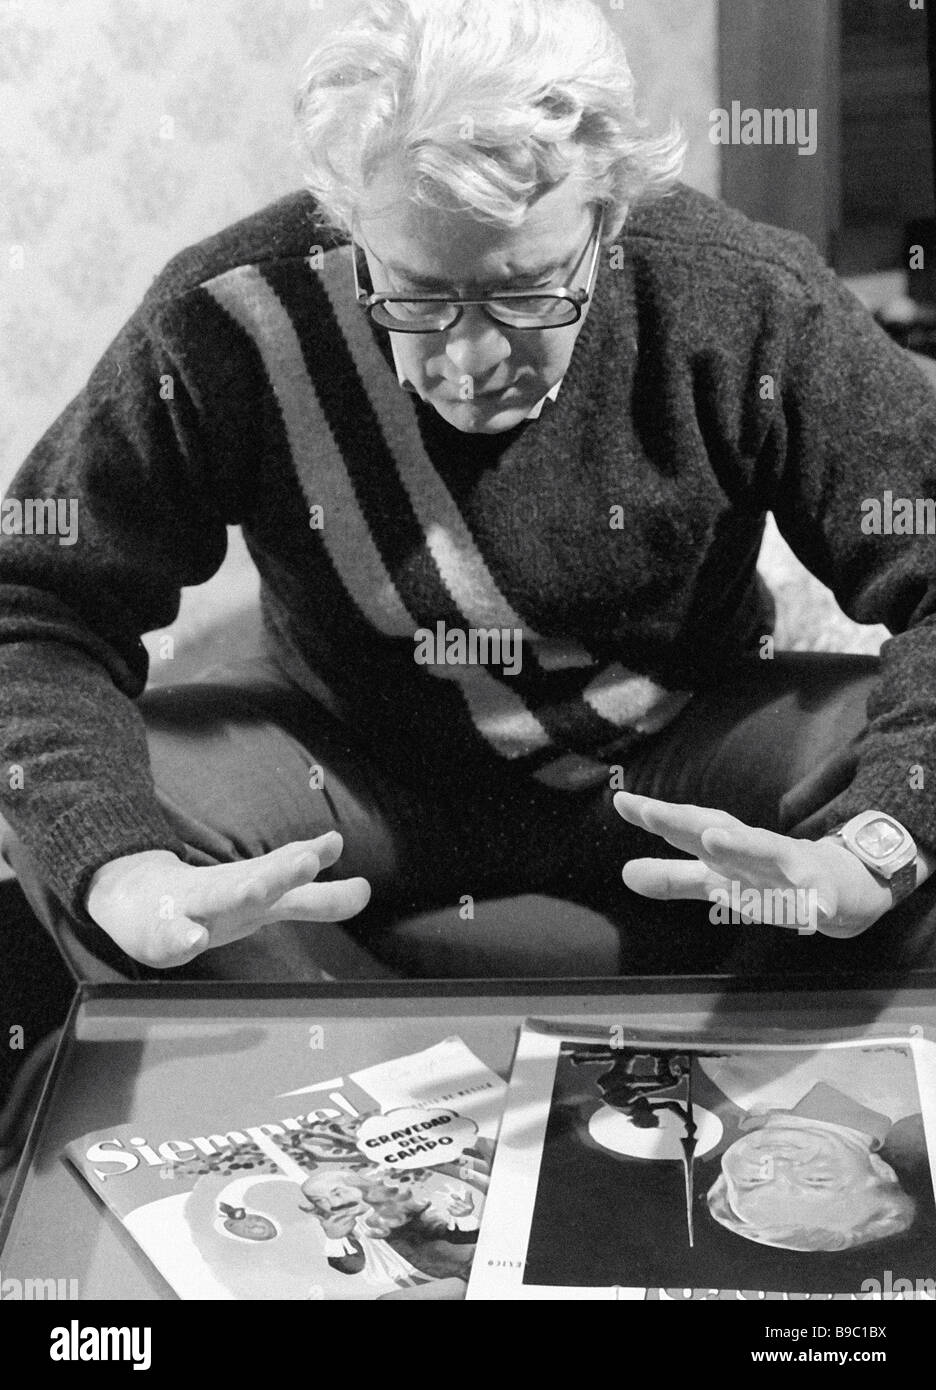 Psychic healer Alan Chumak charging an issue of the Mexican magazine Siempre - Stock Image